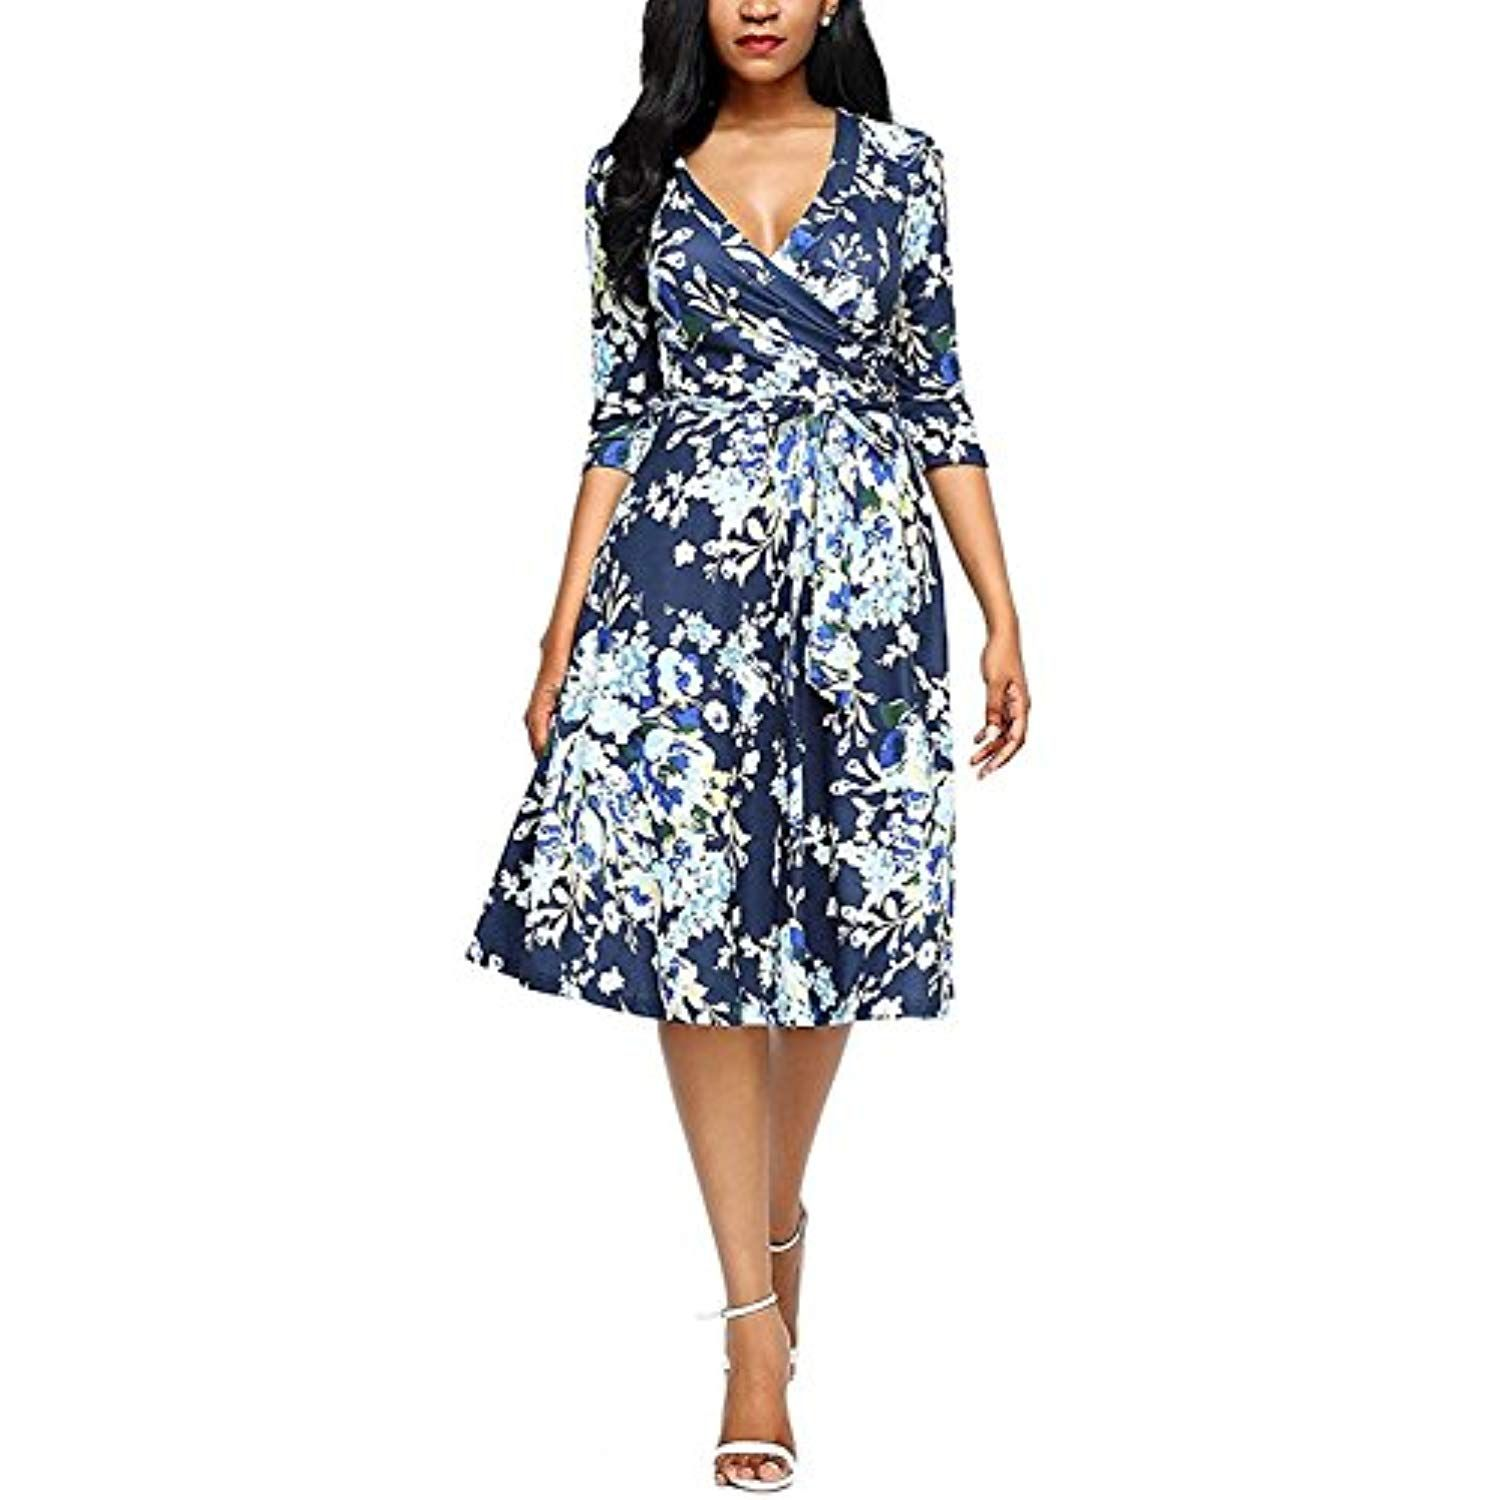 Women S Fall 3 4 Sleeve V Neck Boho Floral Casual Below The Knee Midi Dress Be Sure To Check Fashion Dresses Online Fitted Floral Dress Shop Casual Dresses [ 1500 x 1500 Pixel ]